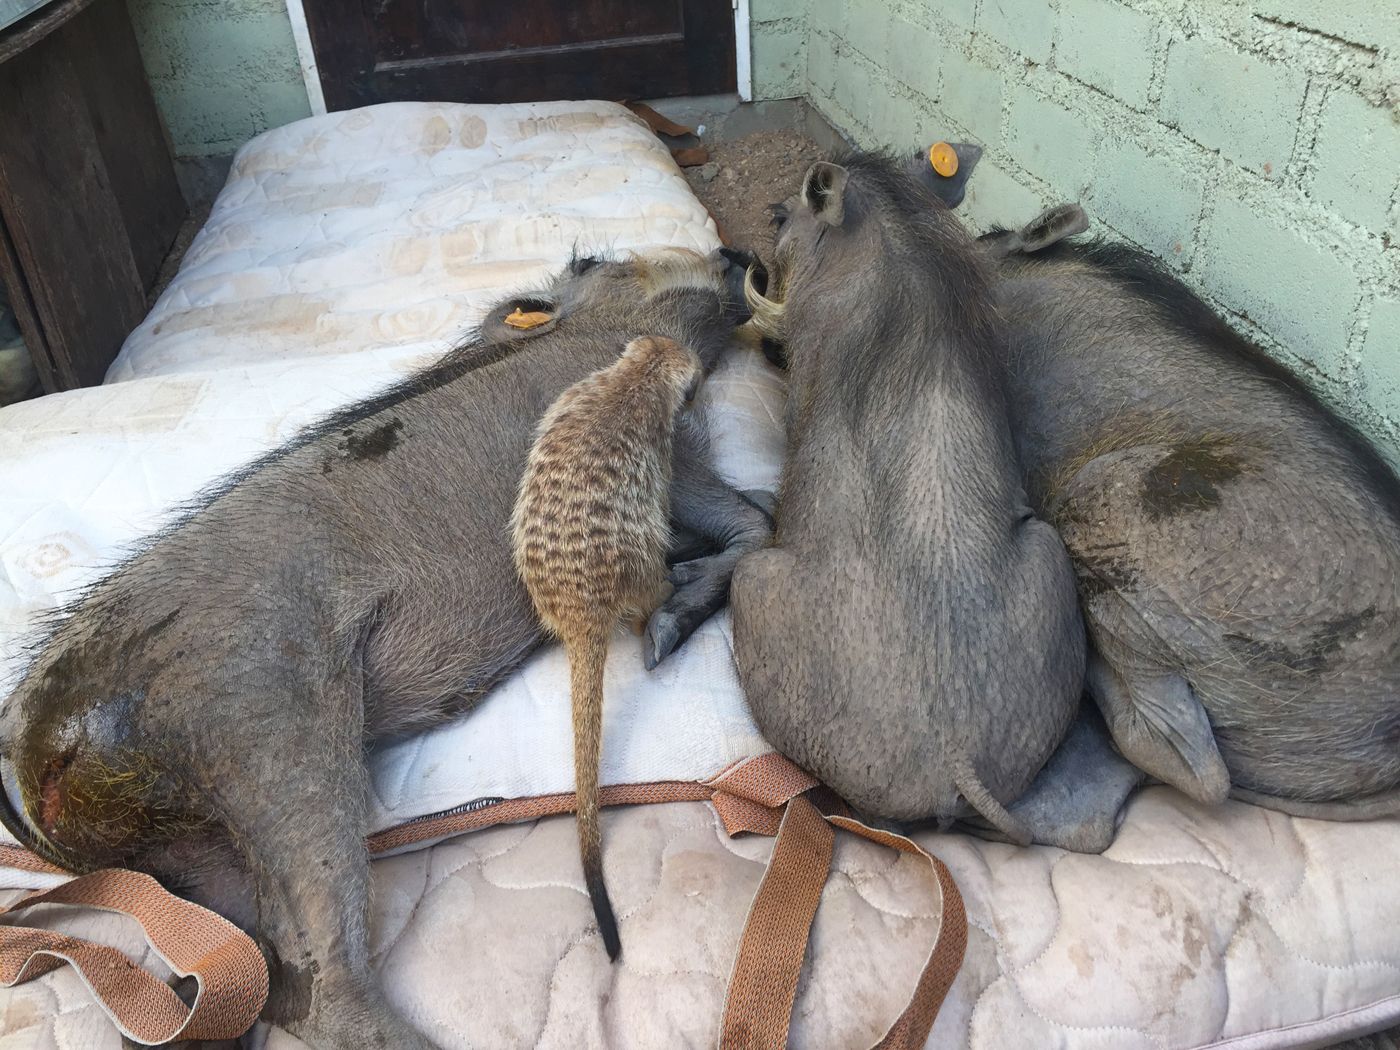 Three warthogs and a meerkat